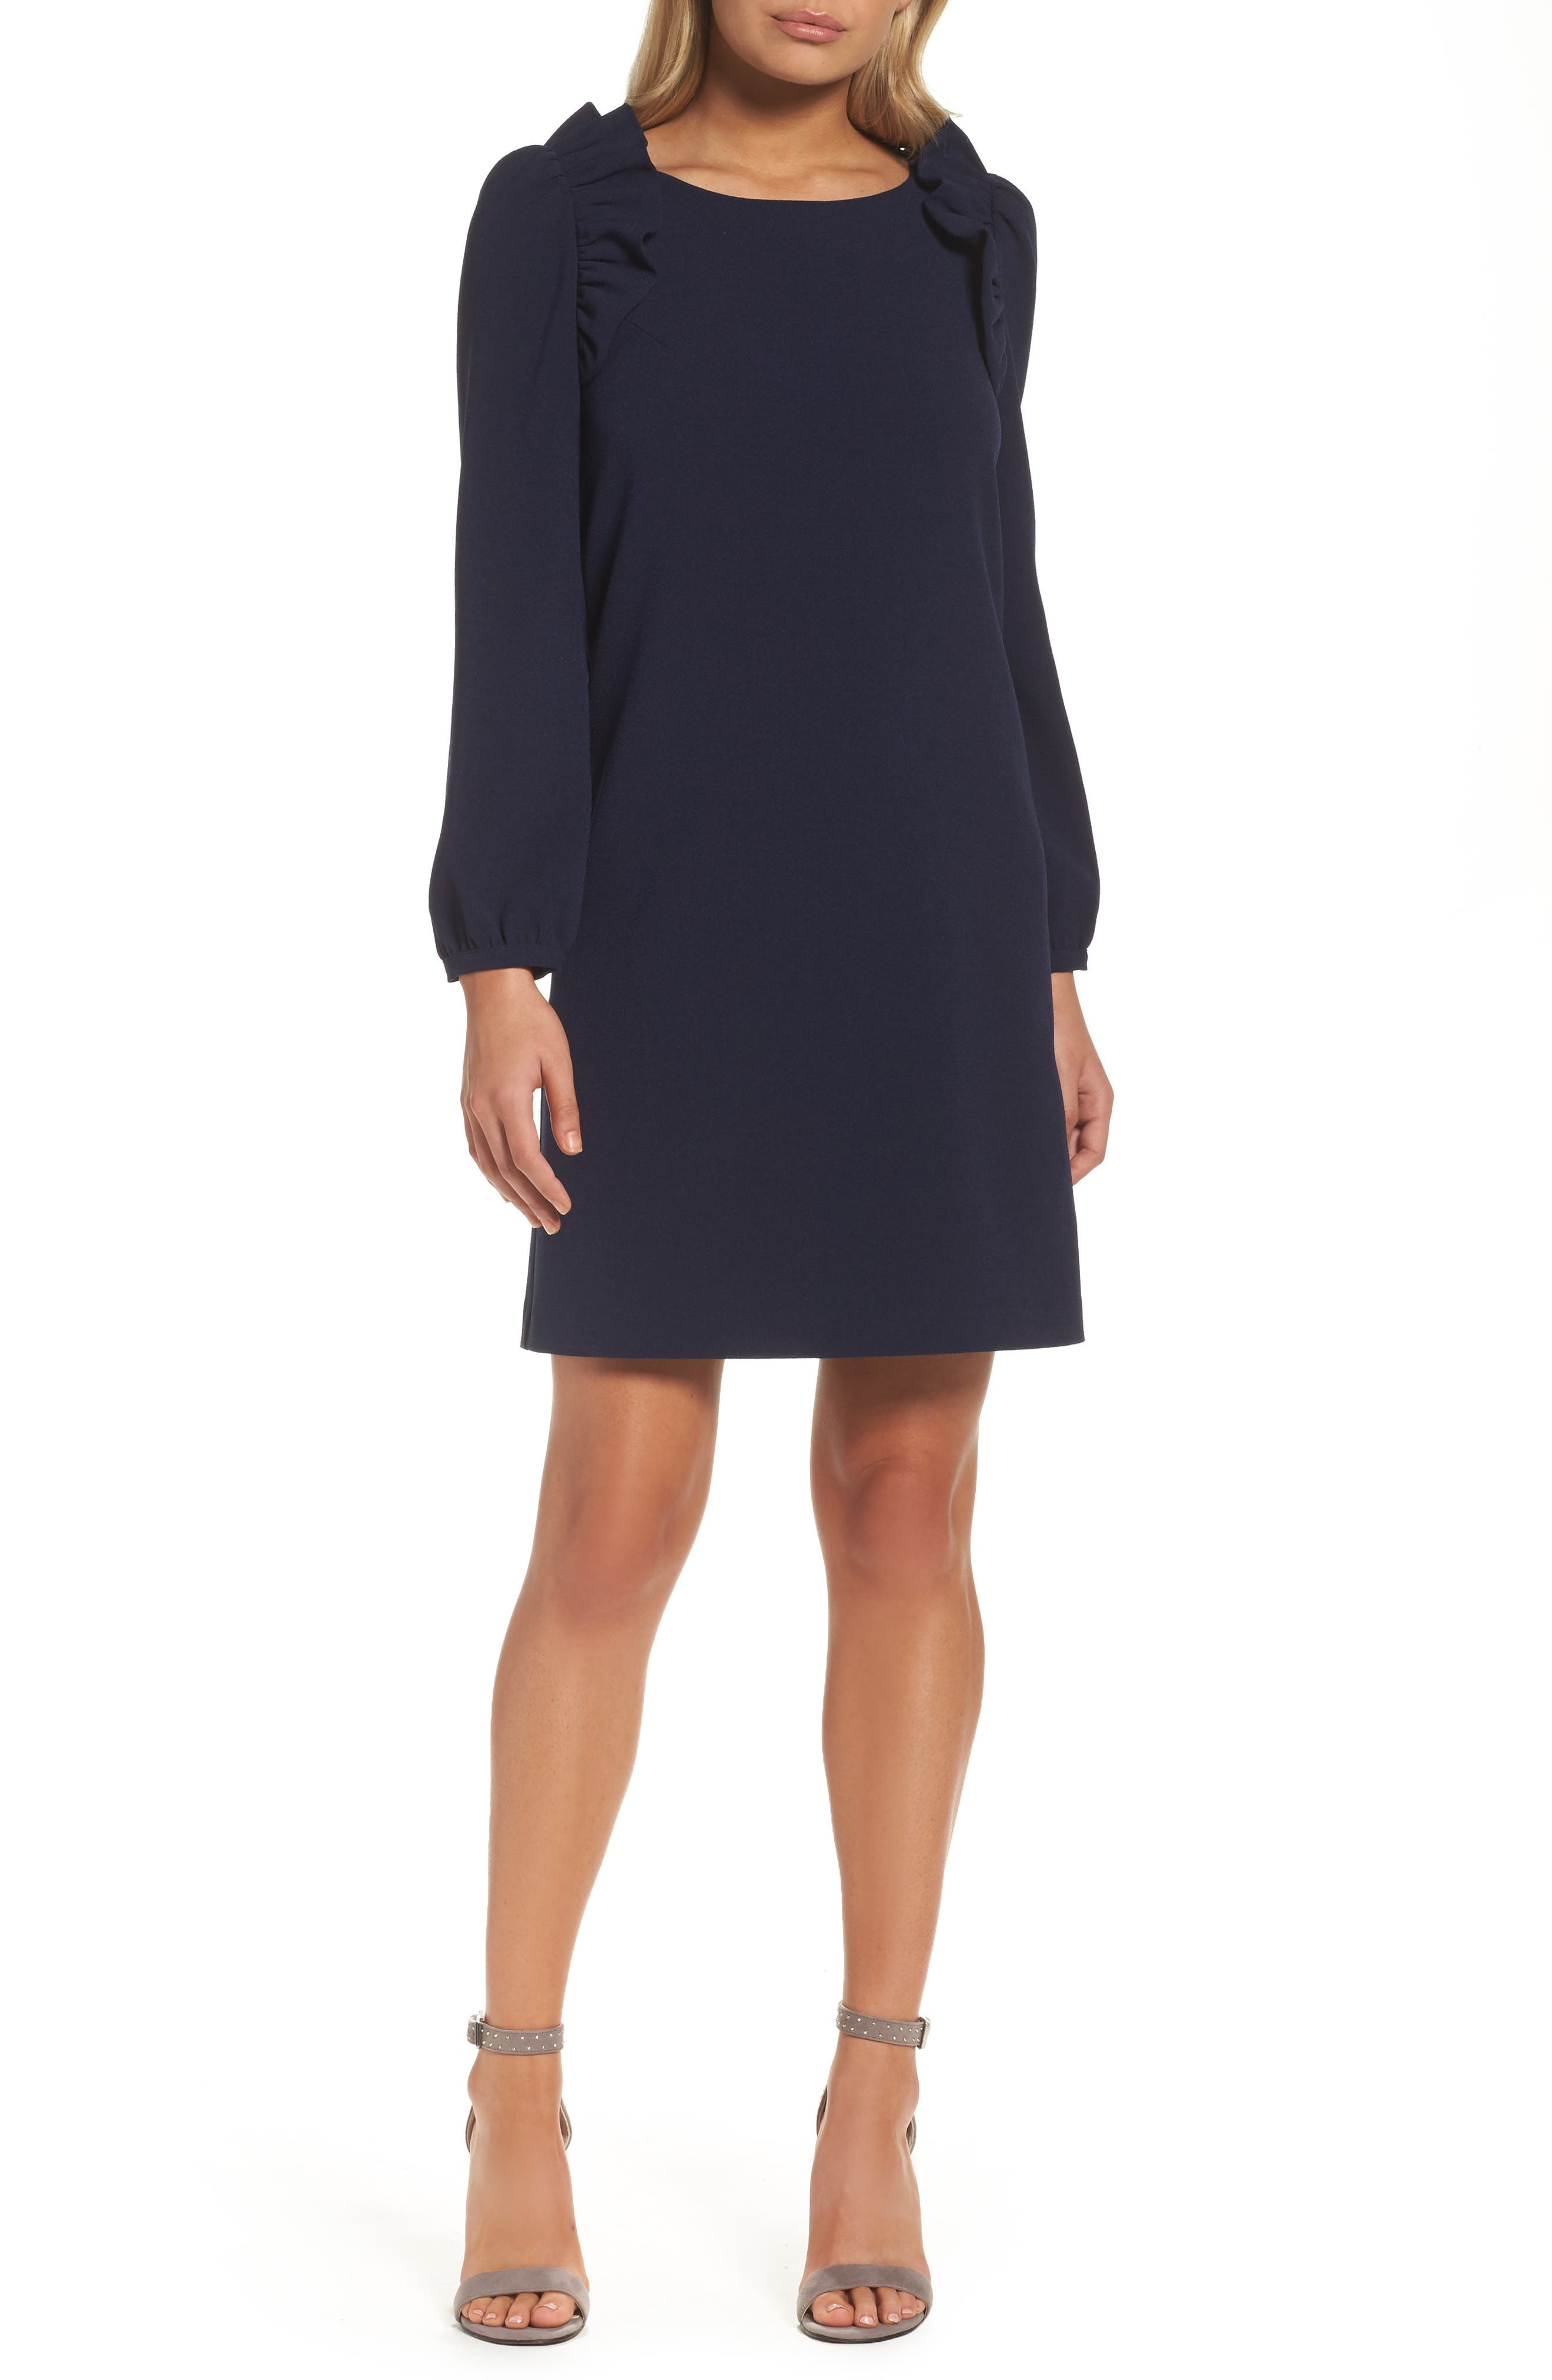 Alternate Image 1 Selected - Chelsea28 Shoulder Ruffle Shift Dress